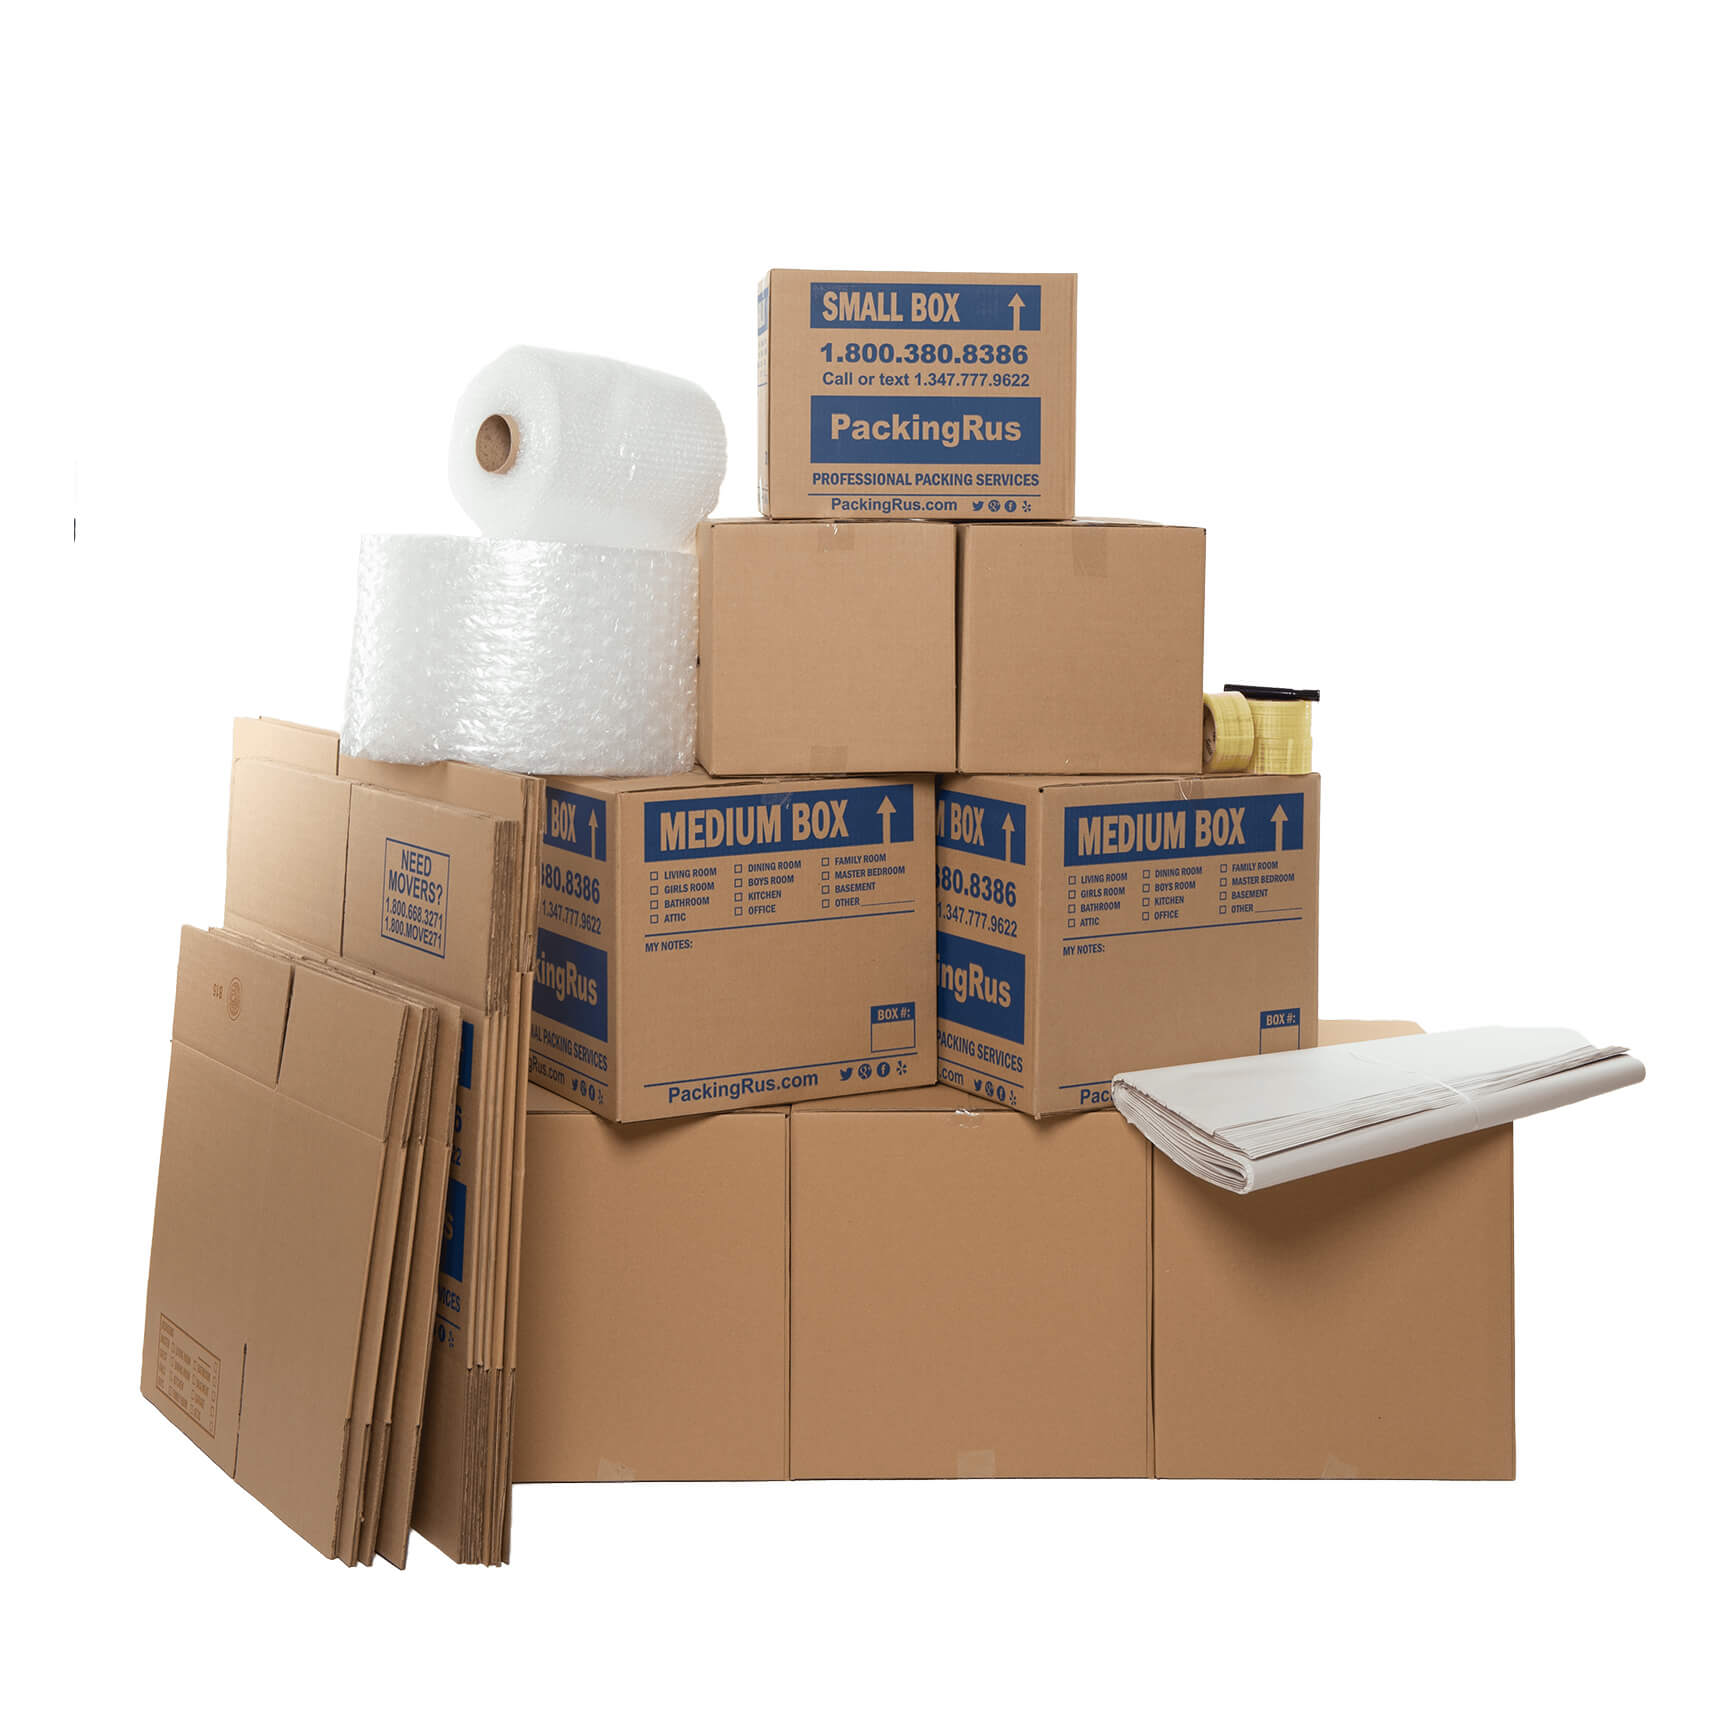 Mid Size Business Office Moving Kit | Kits | Packing R Us | NYC